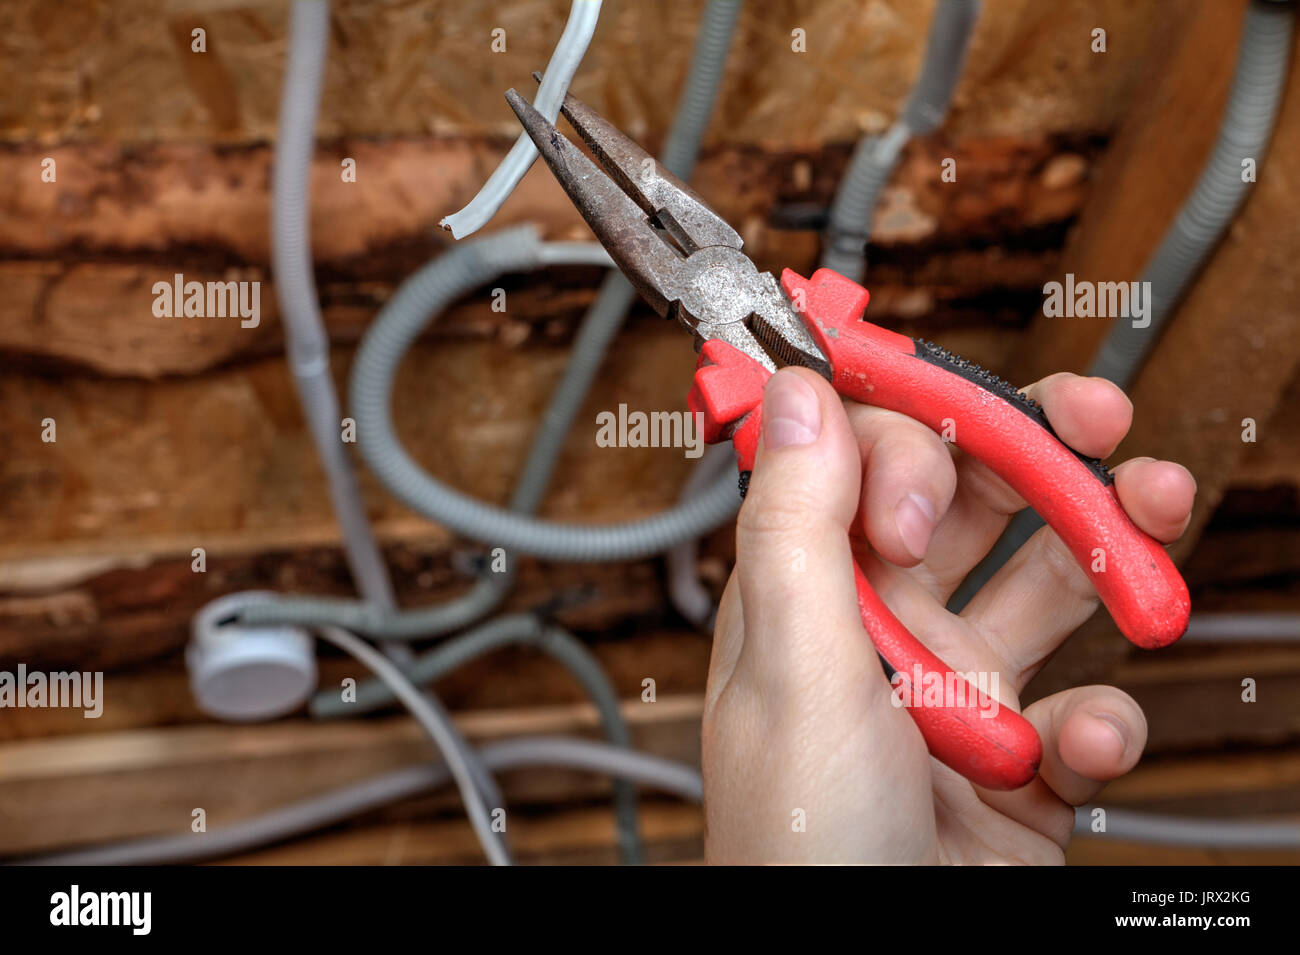 Electrician Wiring Light Switch Stock Photos A Ceiling Rose Installing Mounter Hand With Pliers Close Up Image